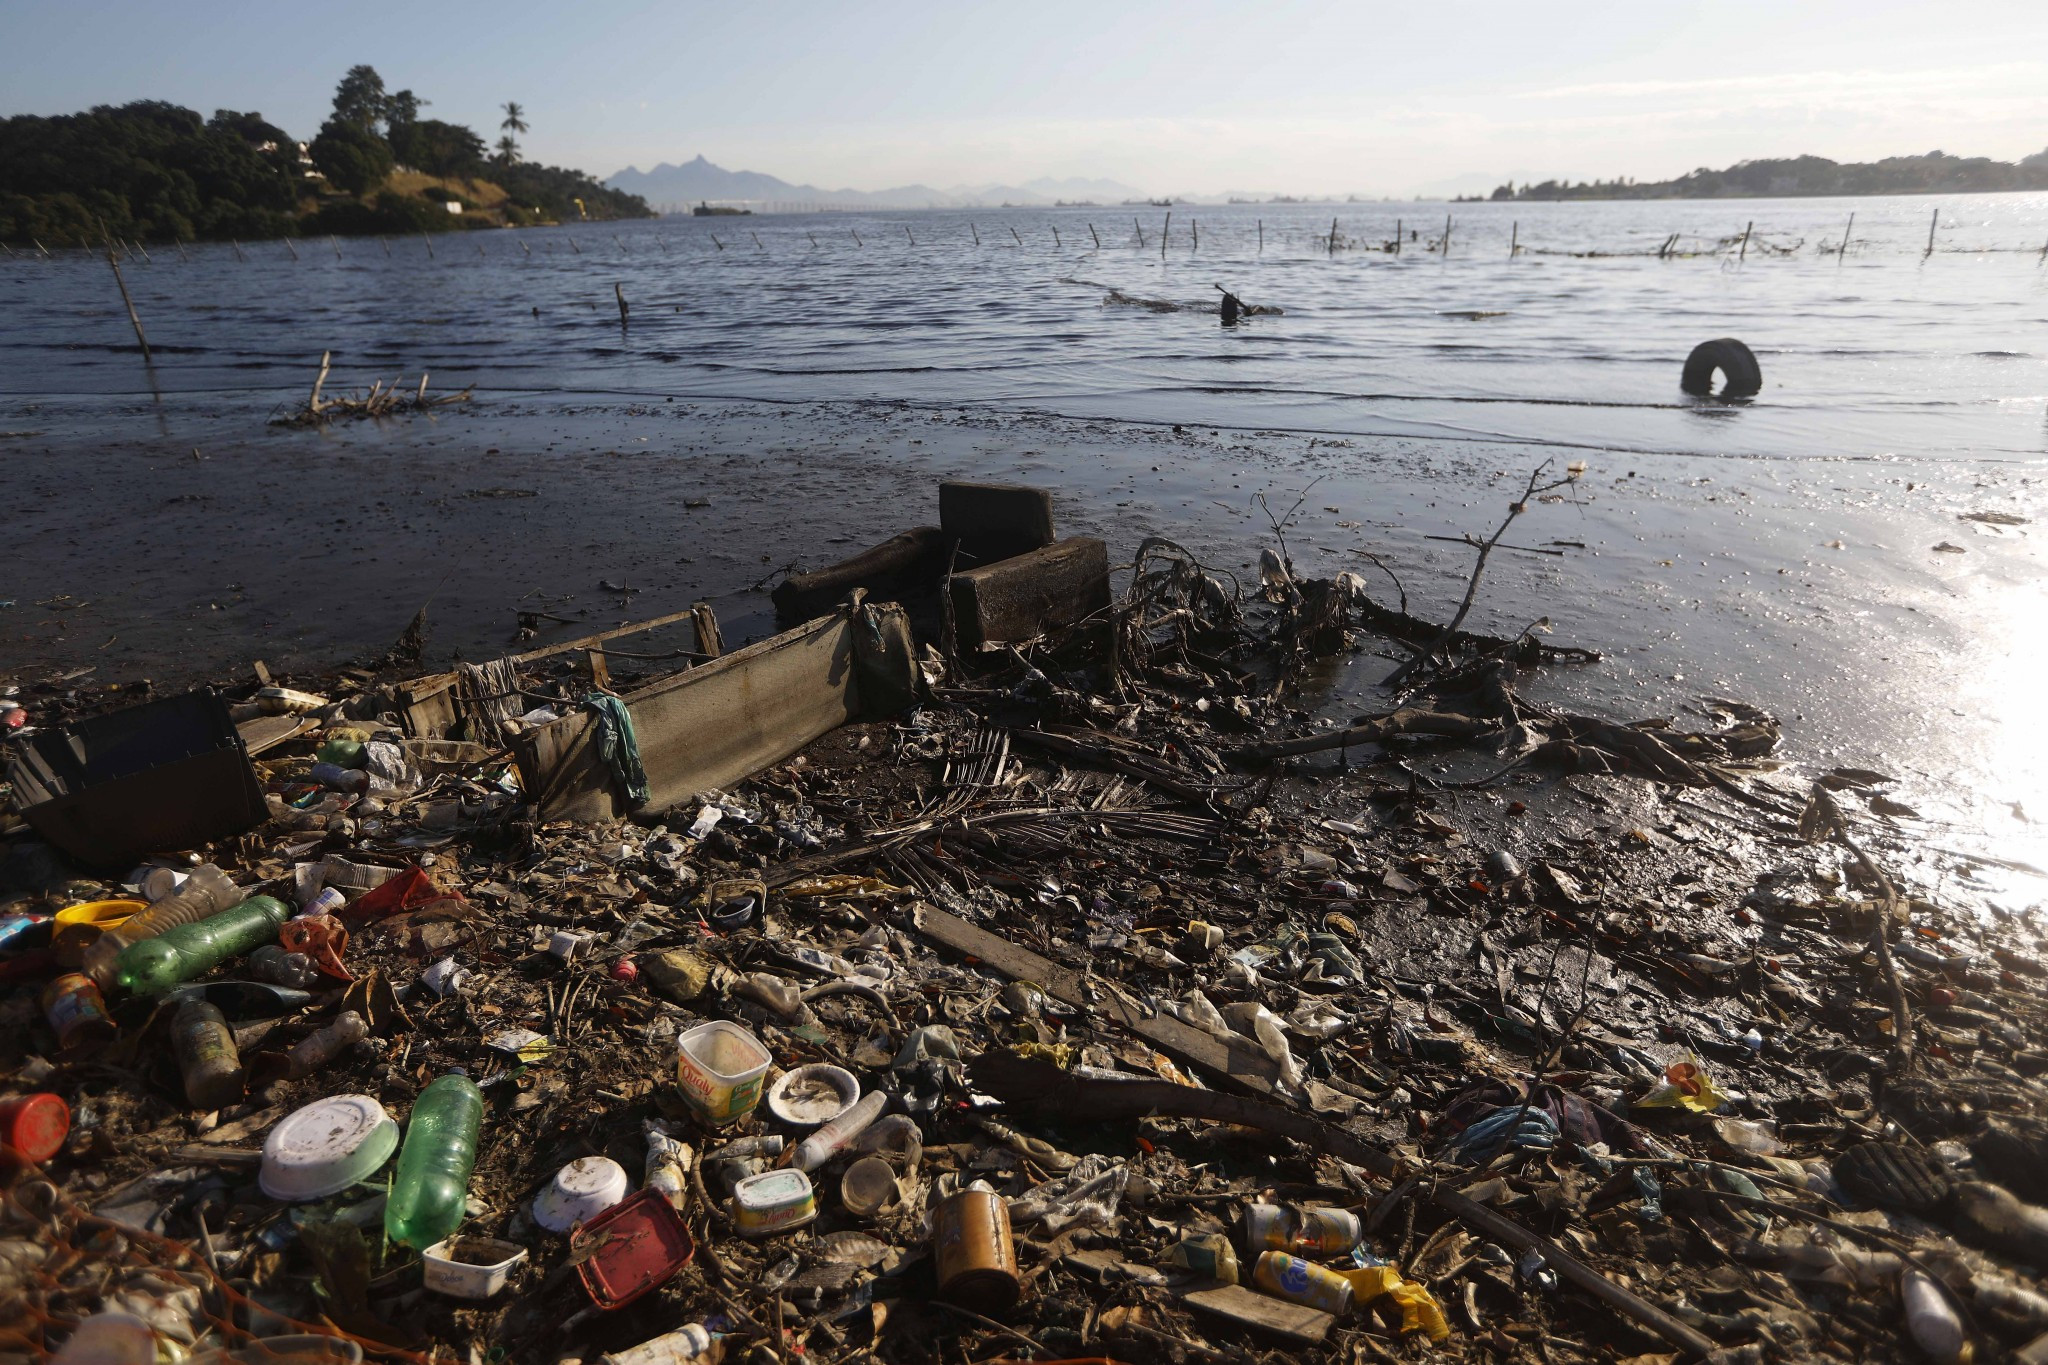 Protest held against Guanabara Bay water pollution one year on from Rio 2016